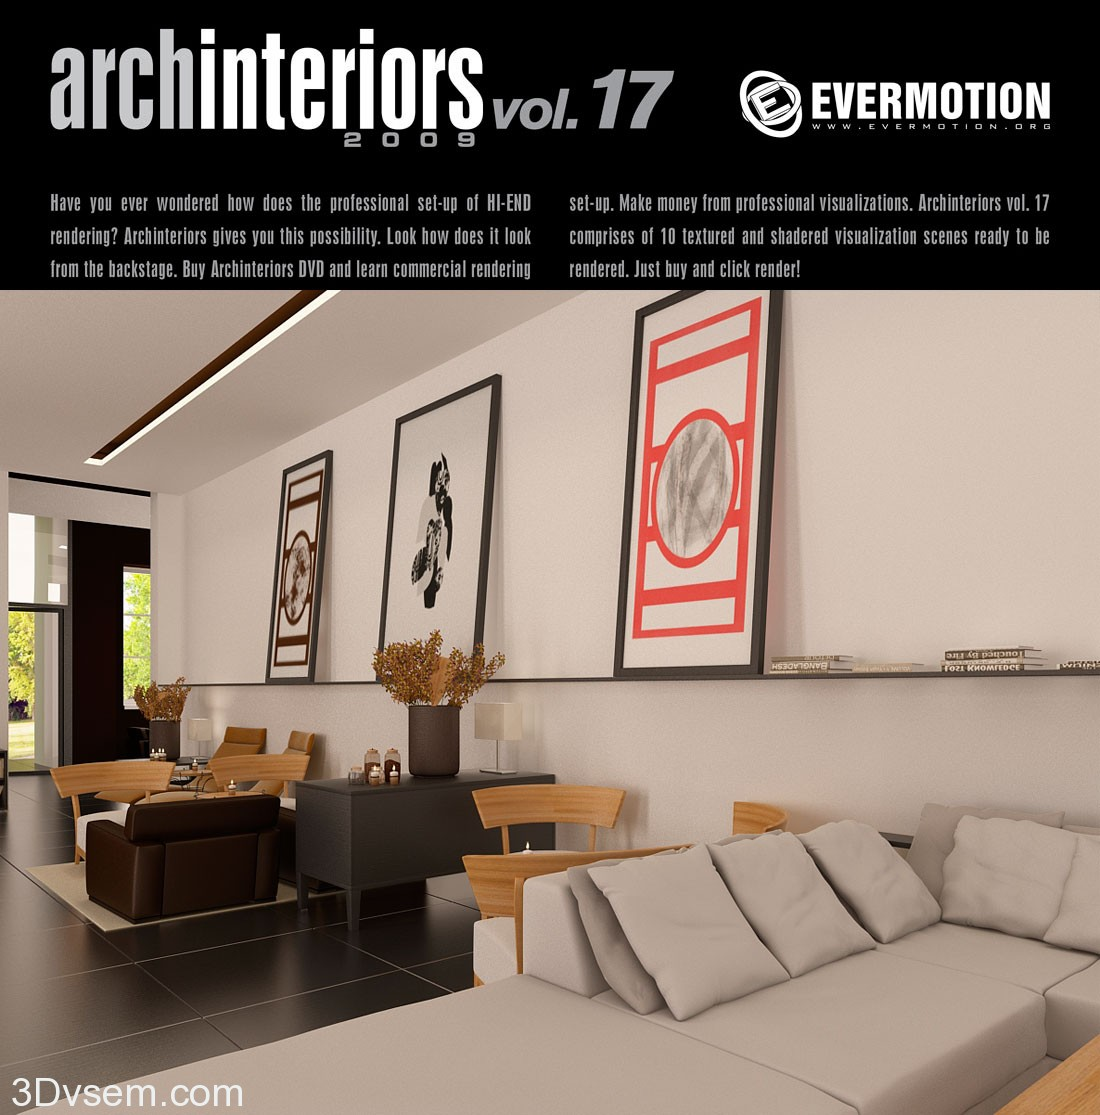 Evermotion Archinteriors Vol. 17